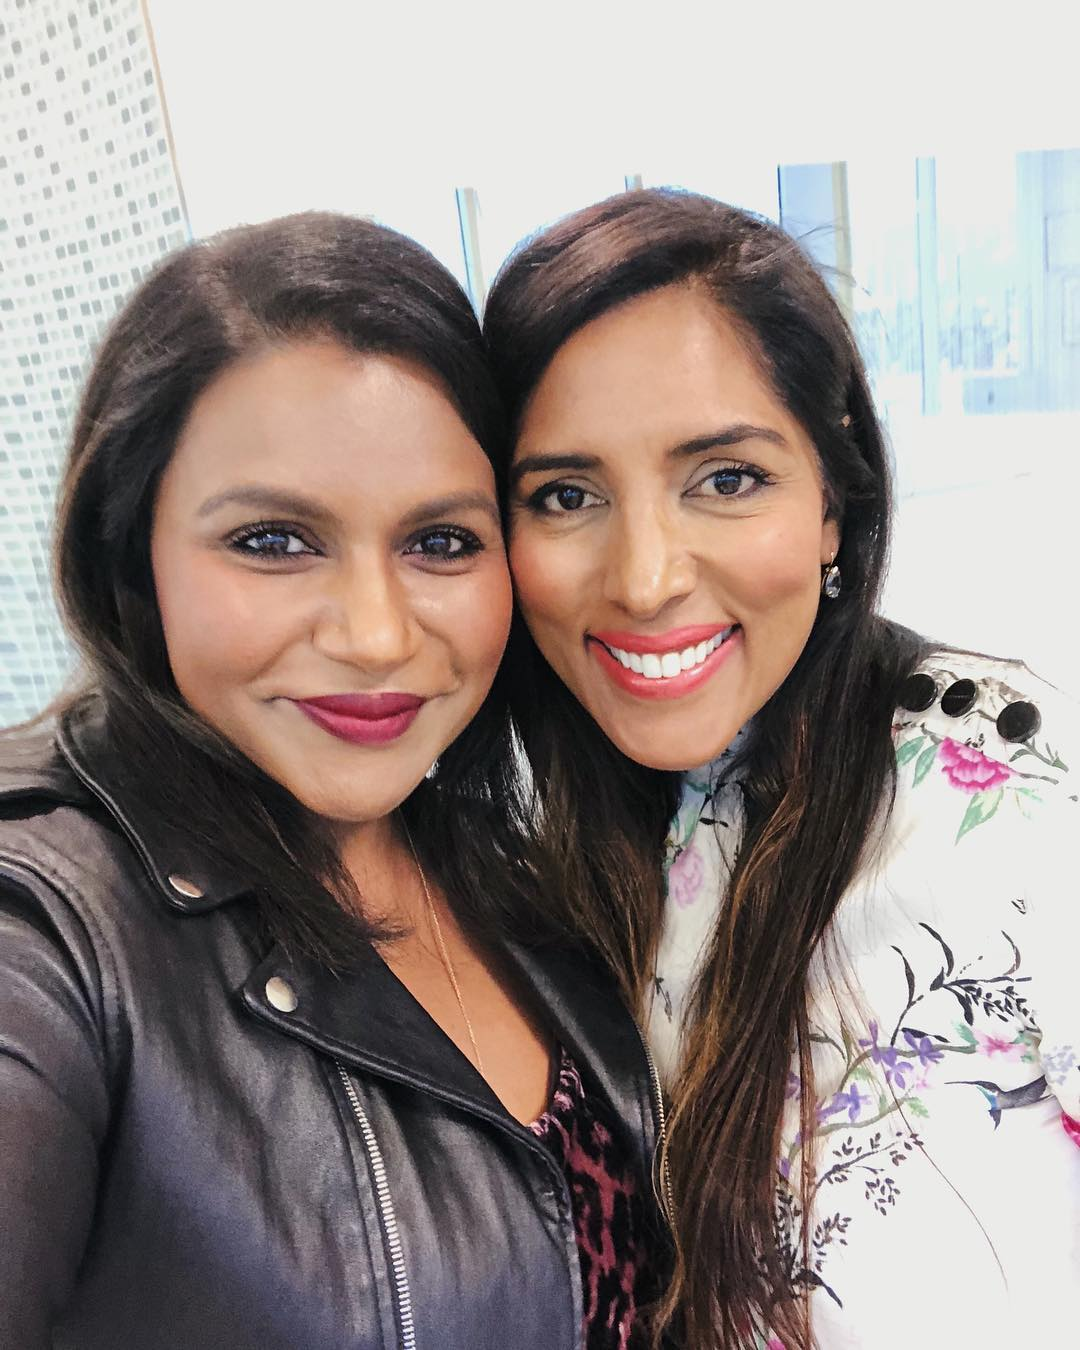 Mindy Kaling Wearing Black Leather Jacket And Leopard Print Top 2019